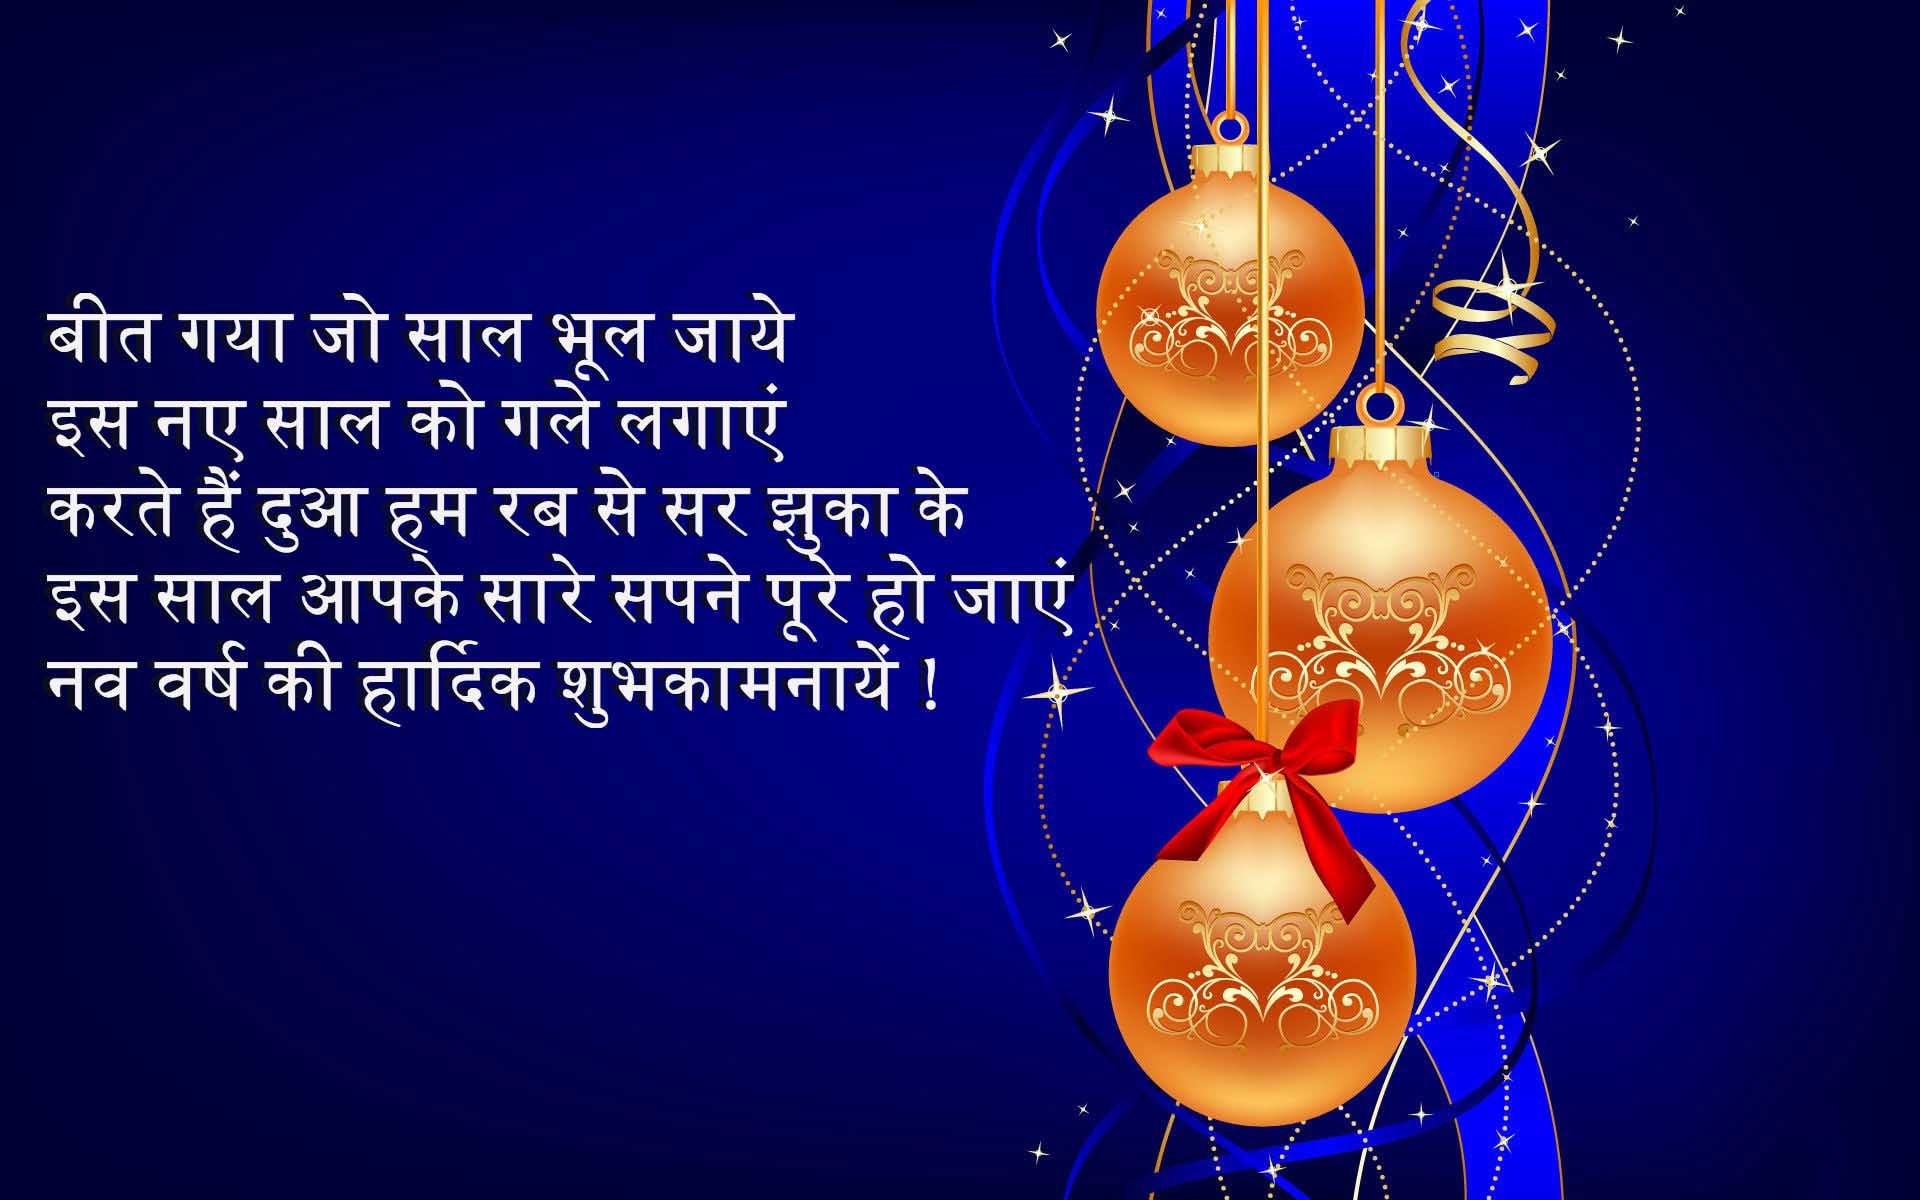 best quotes for happy new year in hindi